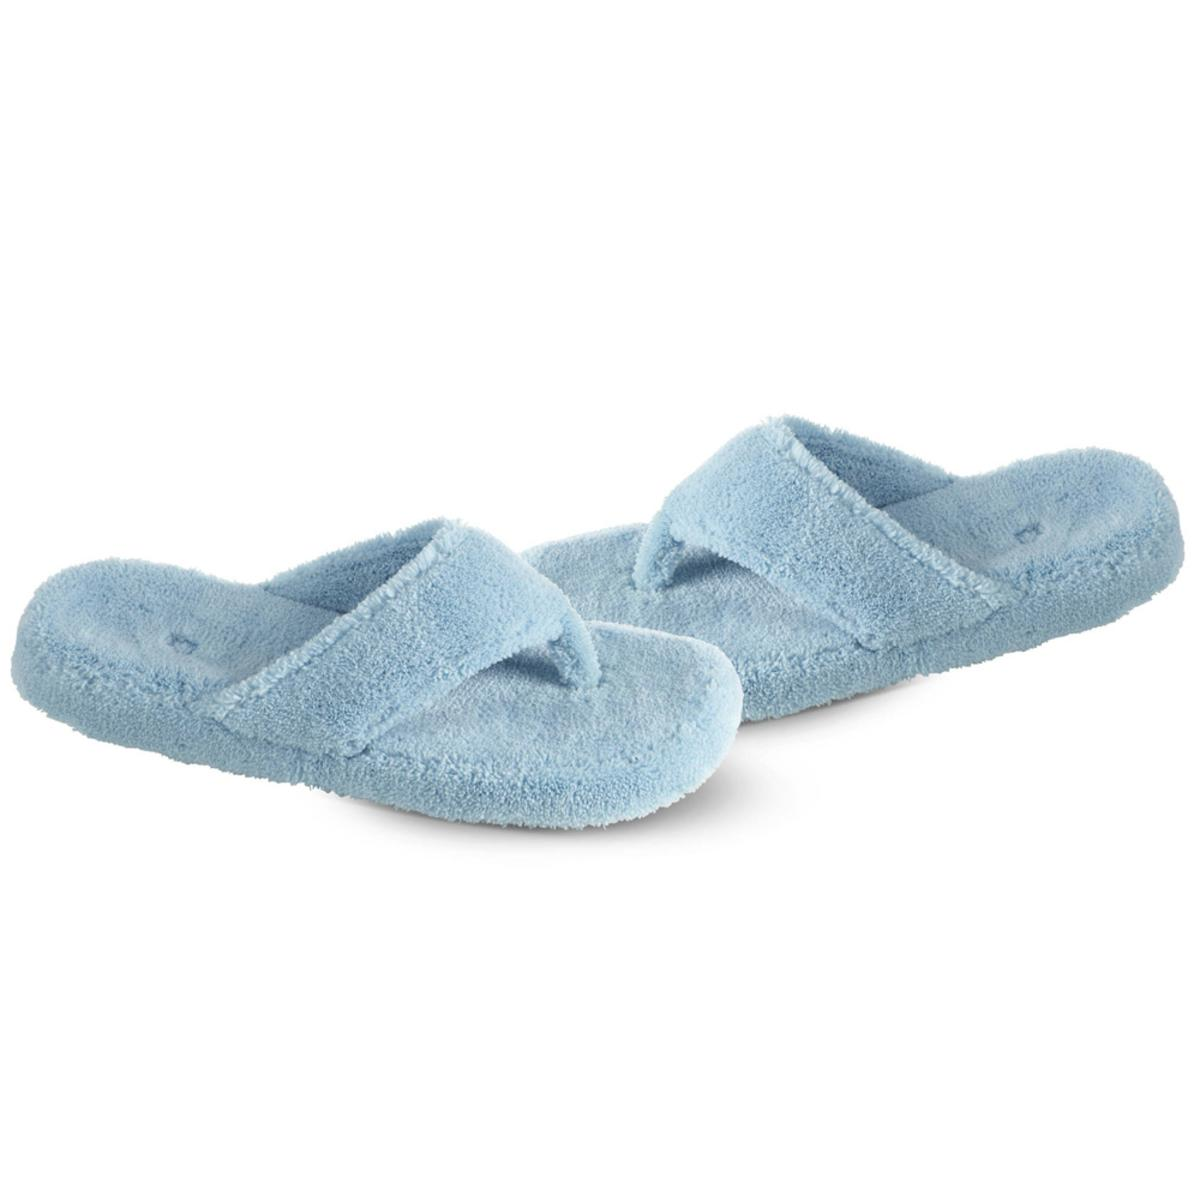 7dcfe3ad2 ACORN Women s Spa Thong Slippers - Turq - The Warming Store